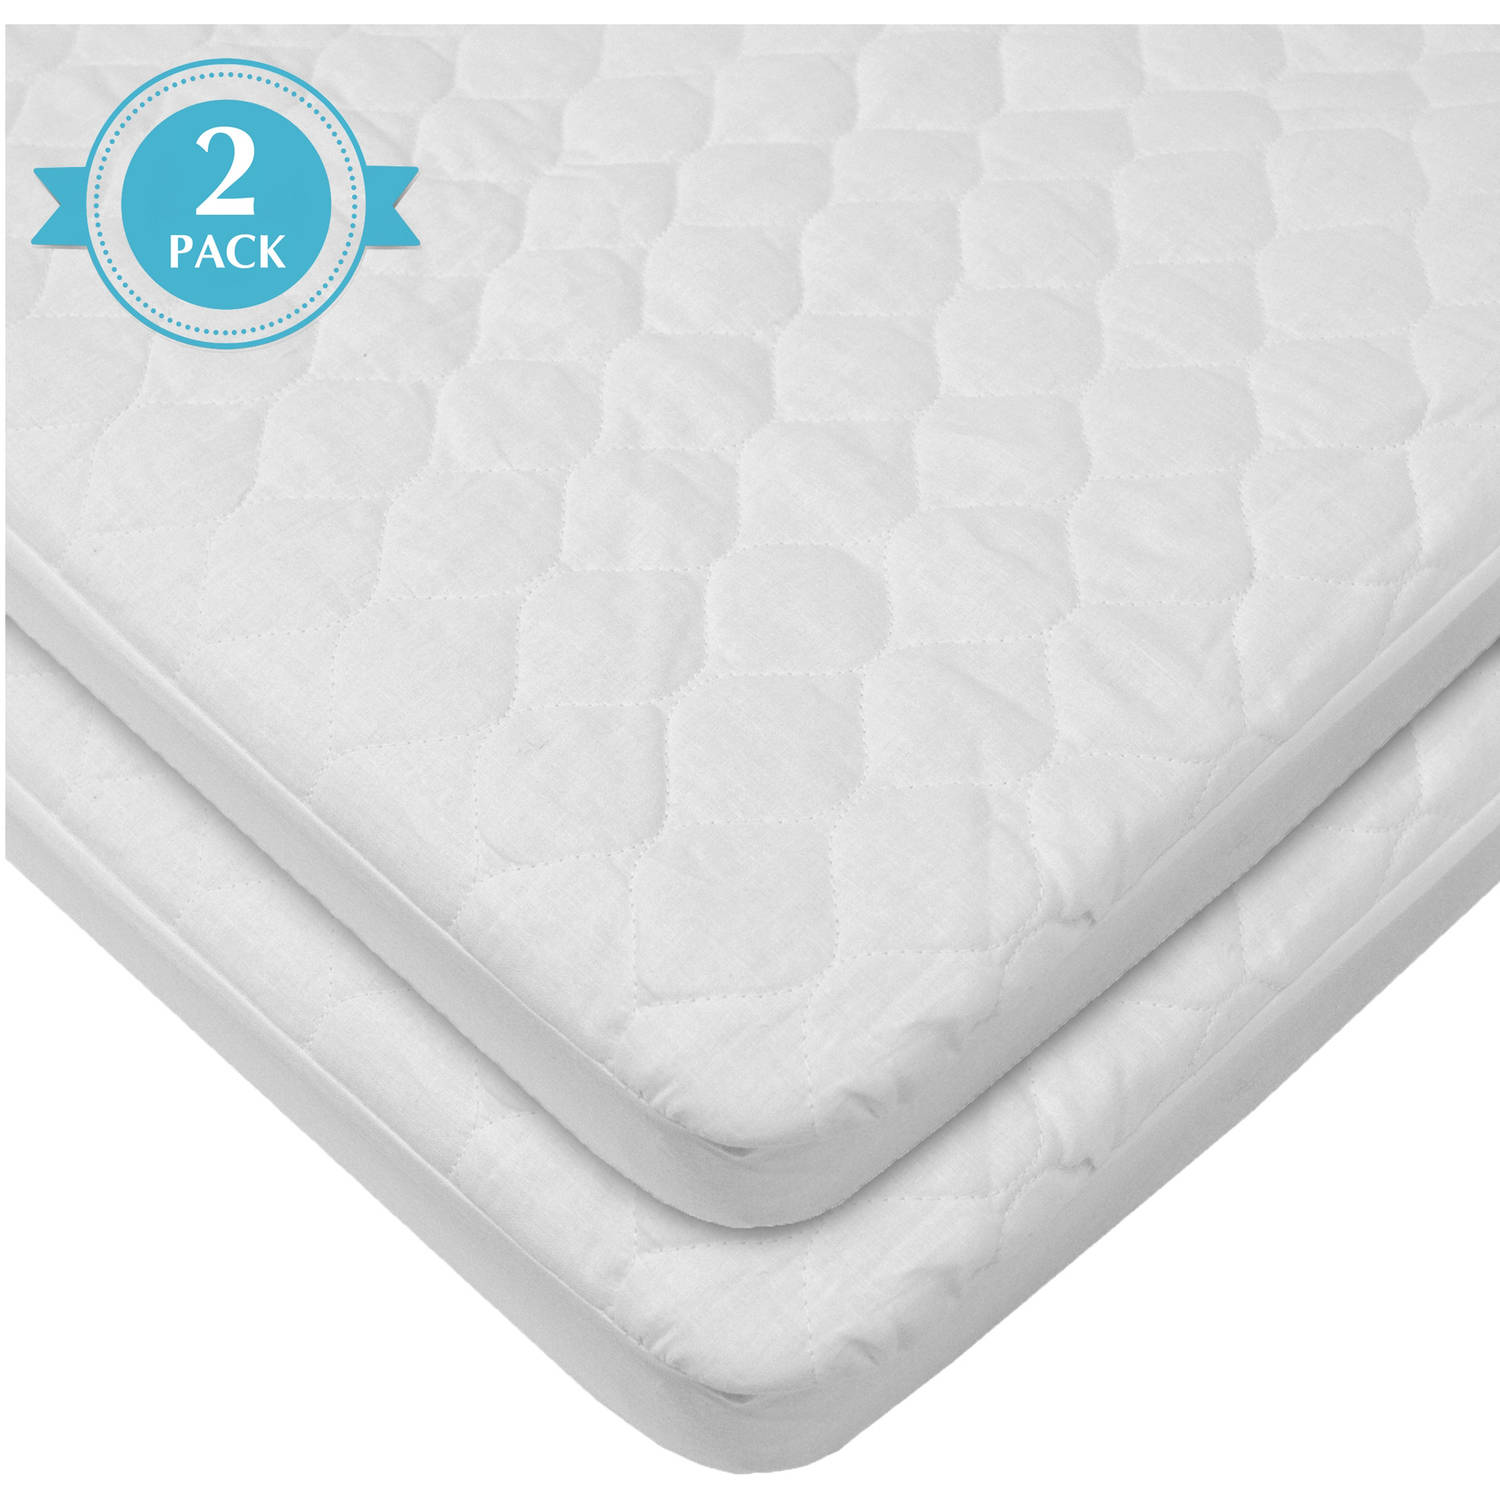 American Baby Company Waterproof fitted Quilted Portable/Mini-Crib Mattress Pad Cover, White, 2 Count